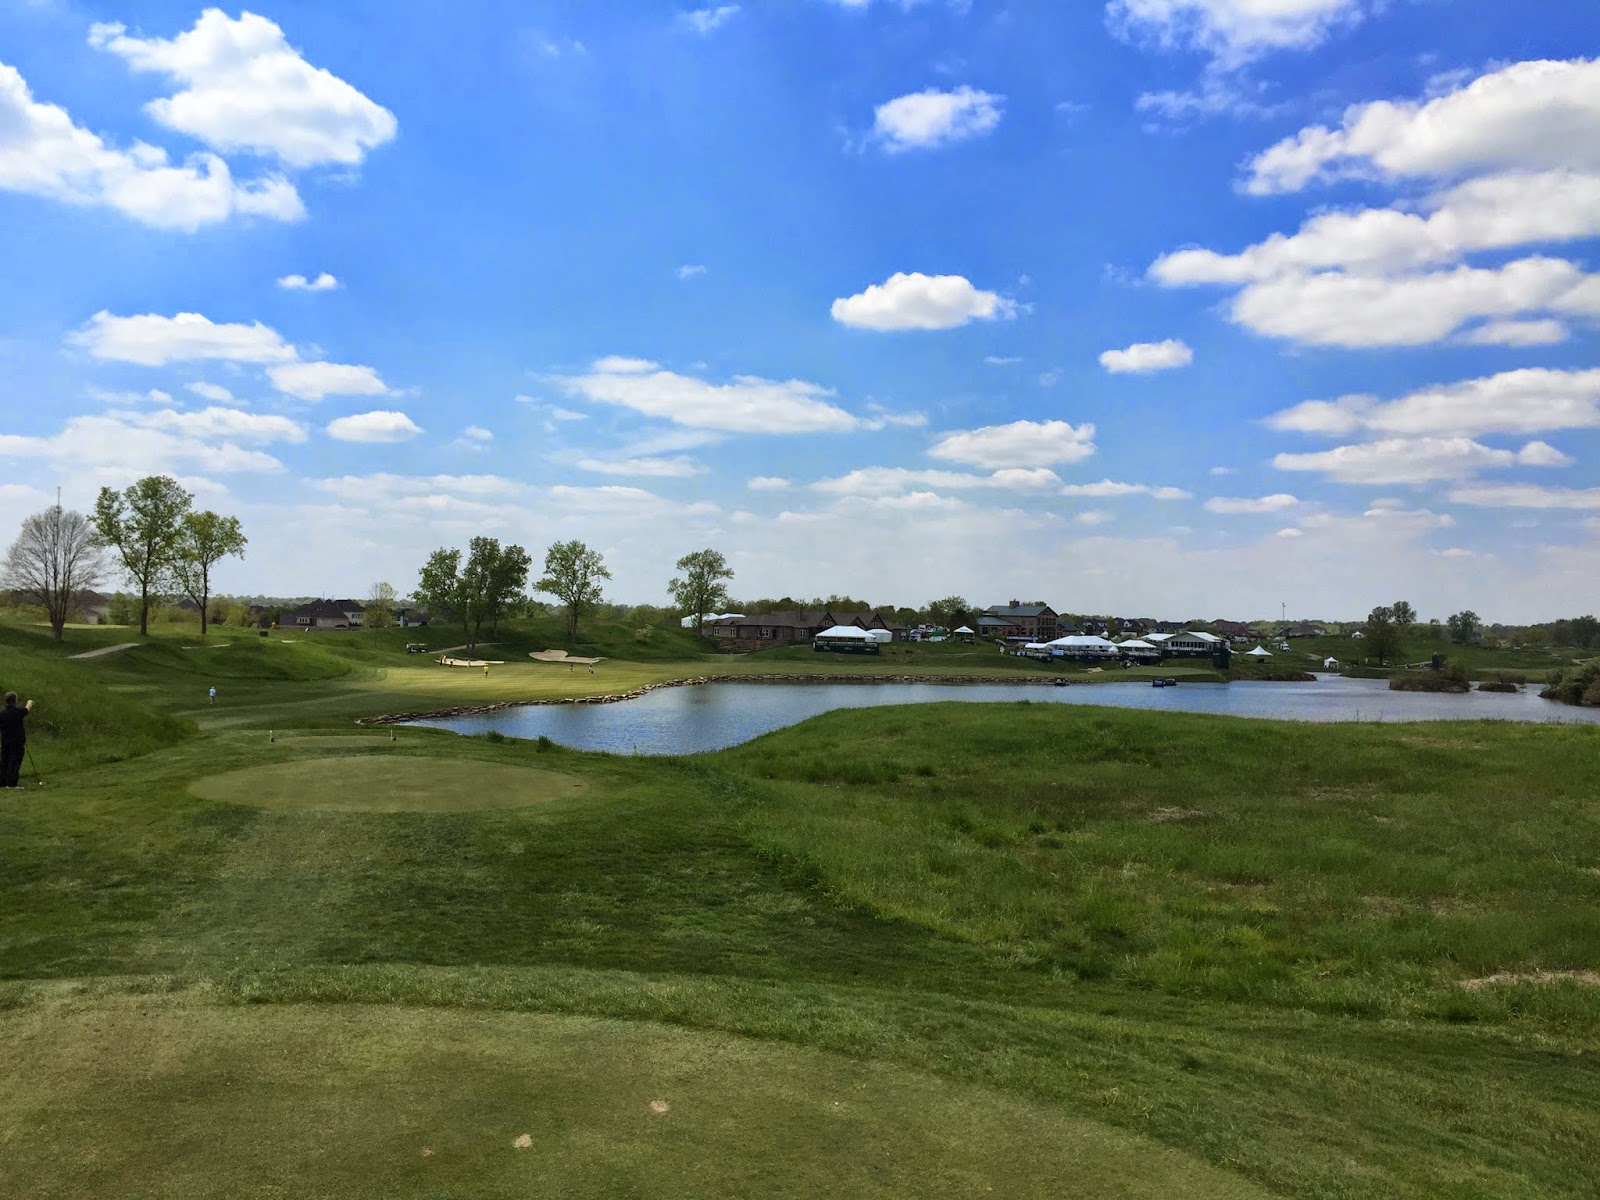 The 18th hole at Victoria National.